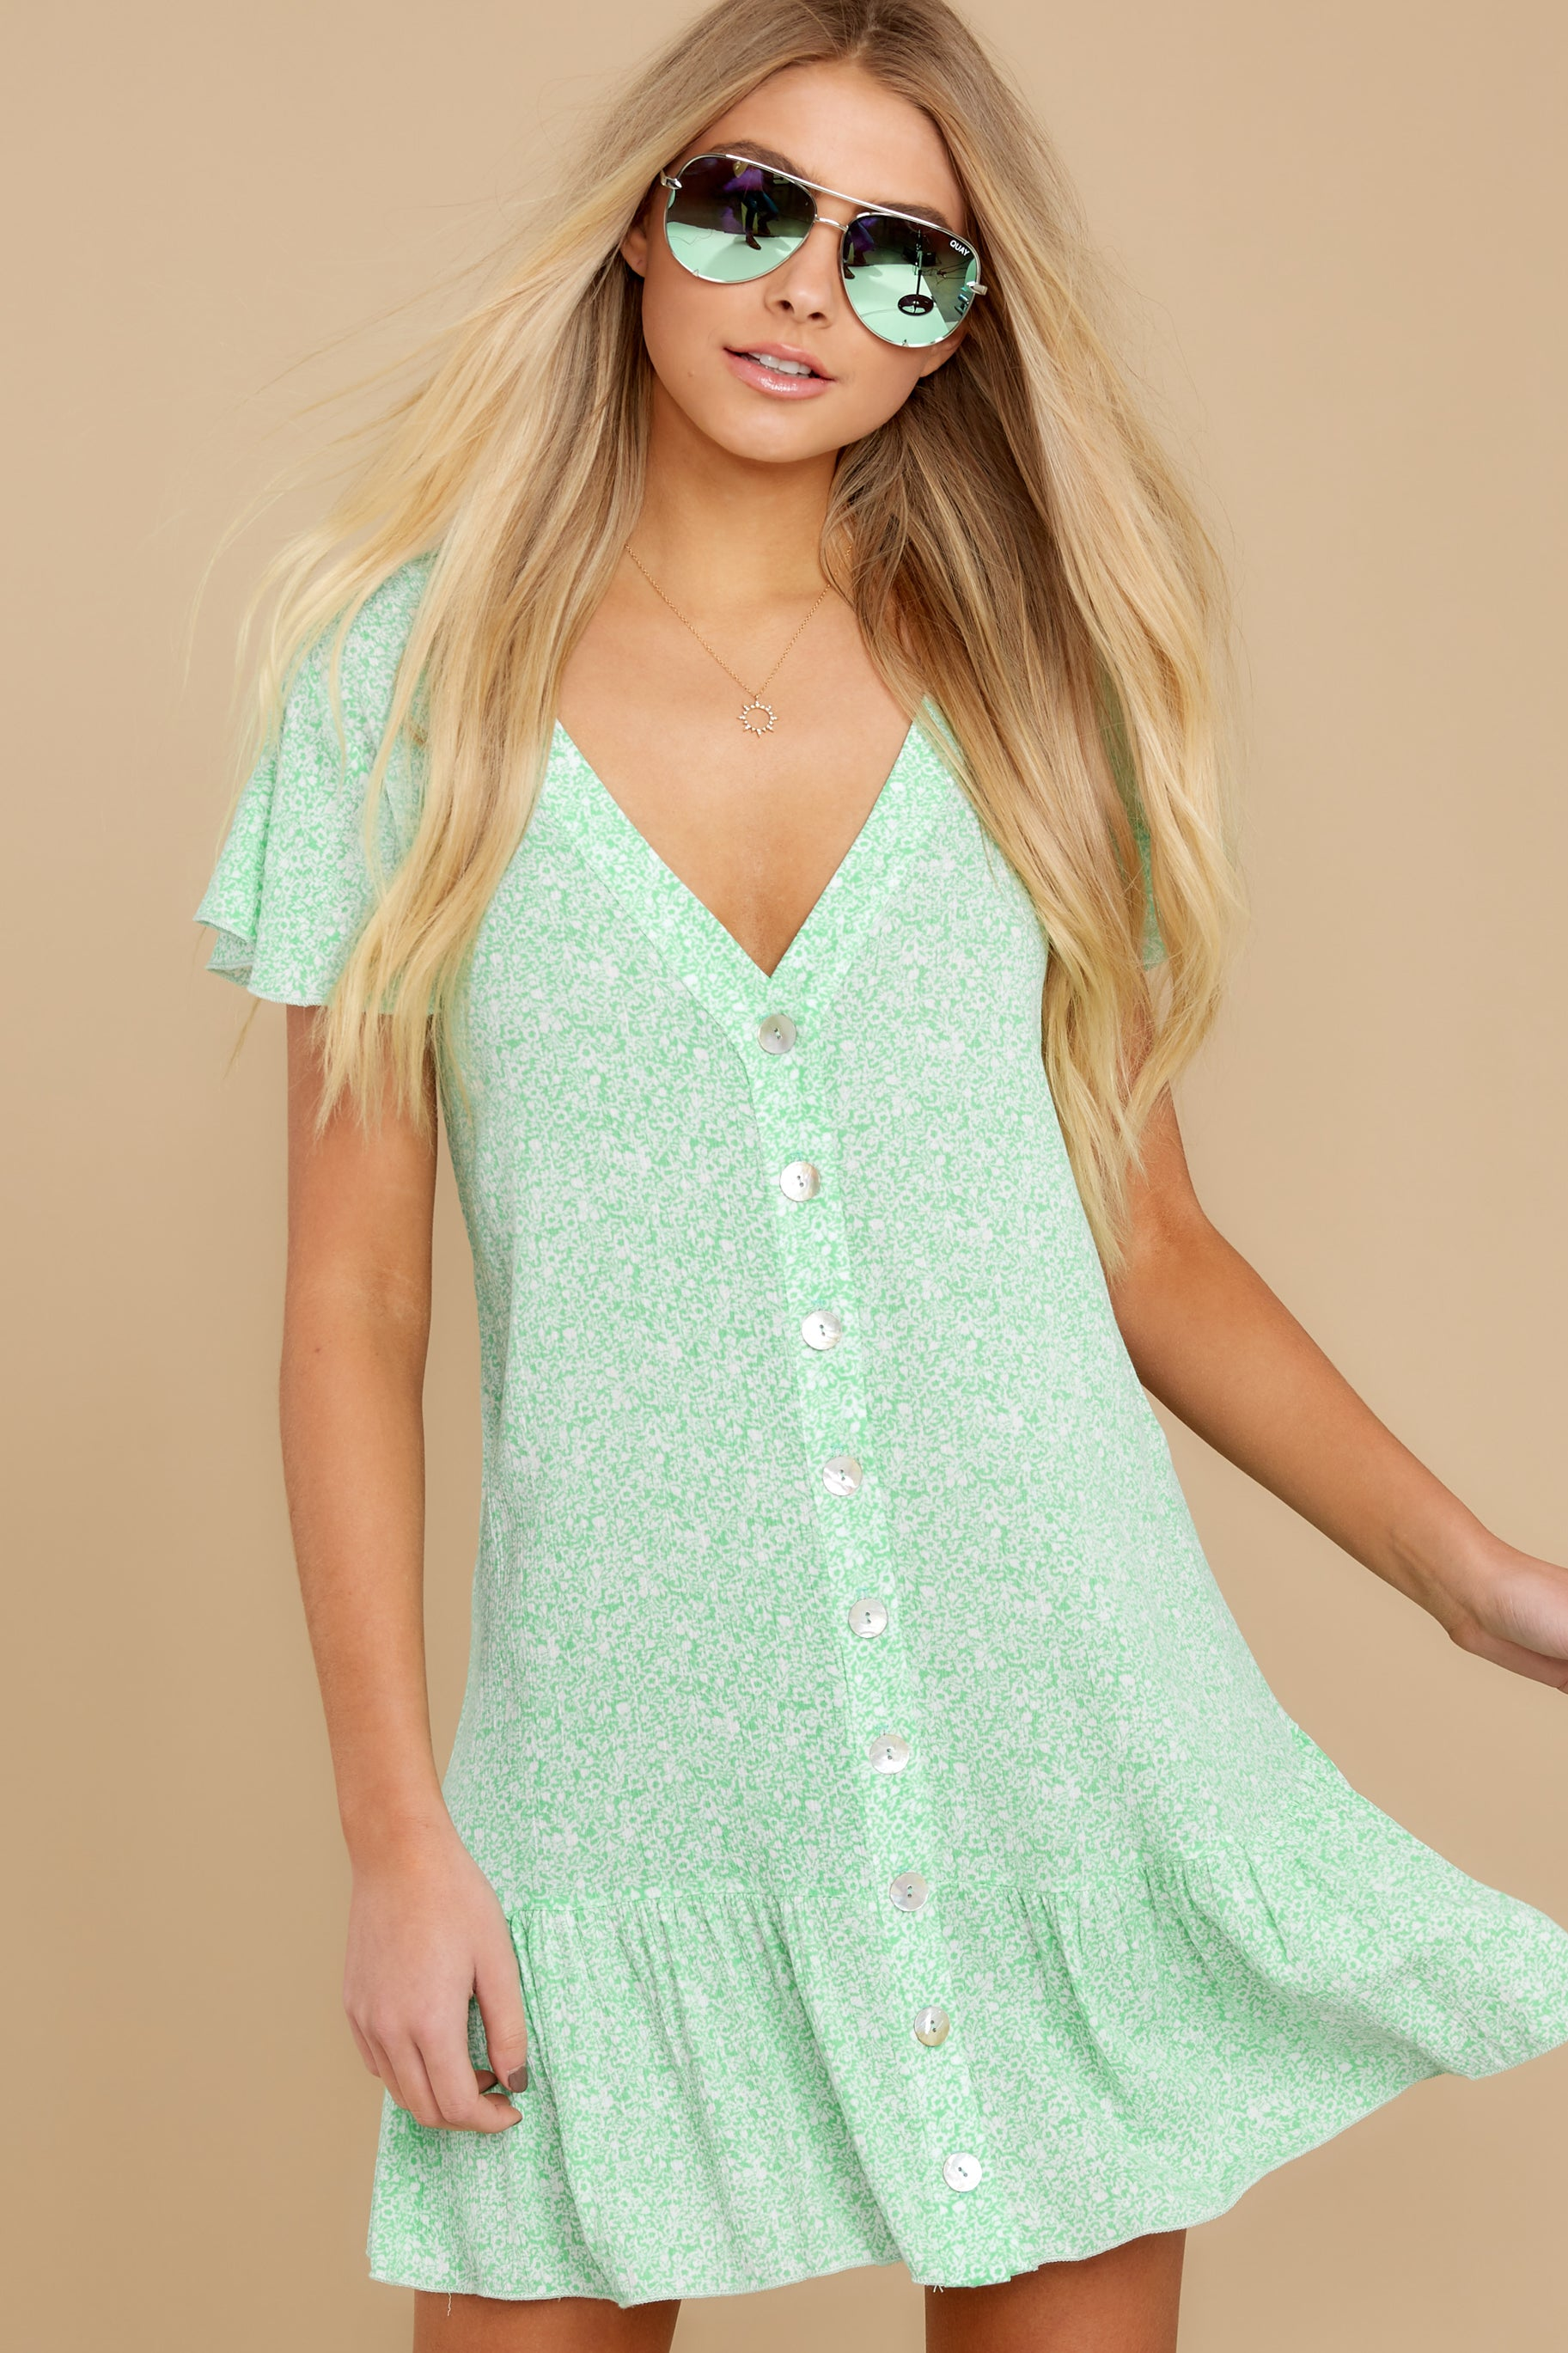 5 Moments Of Leisure Light Green Floral Print Dress at reddress.com